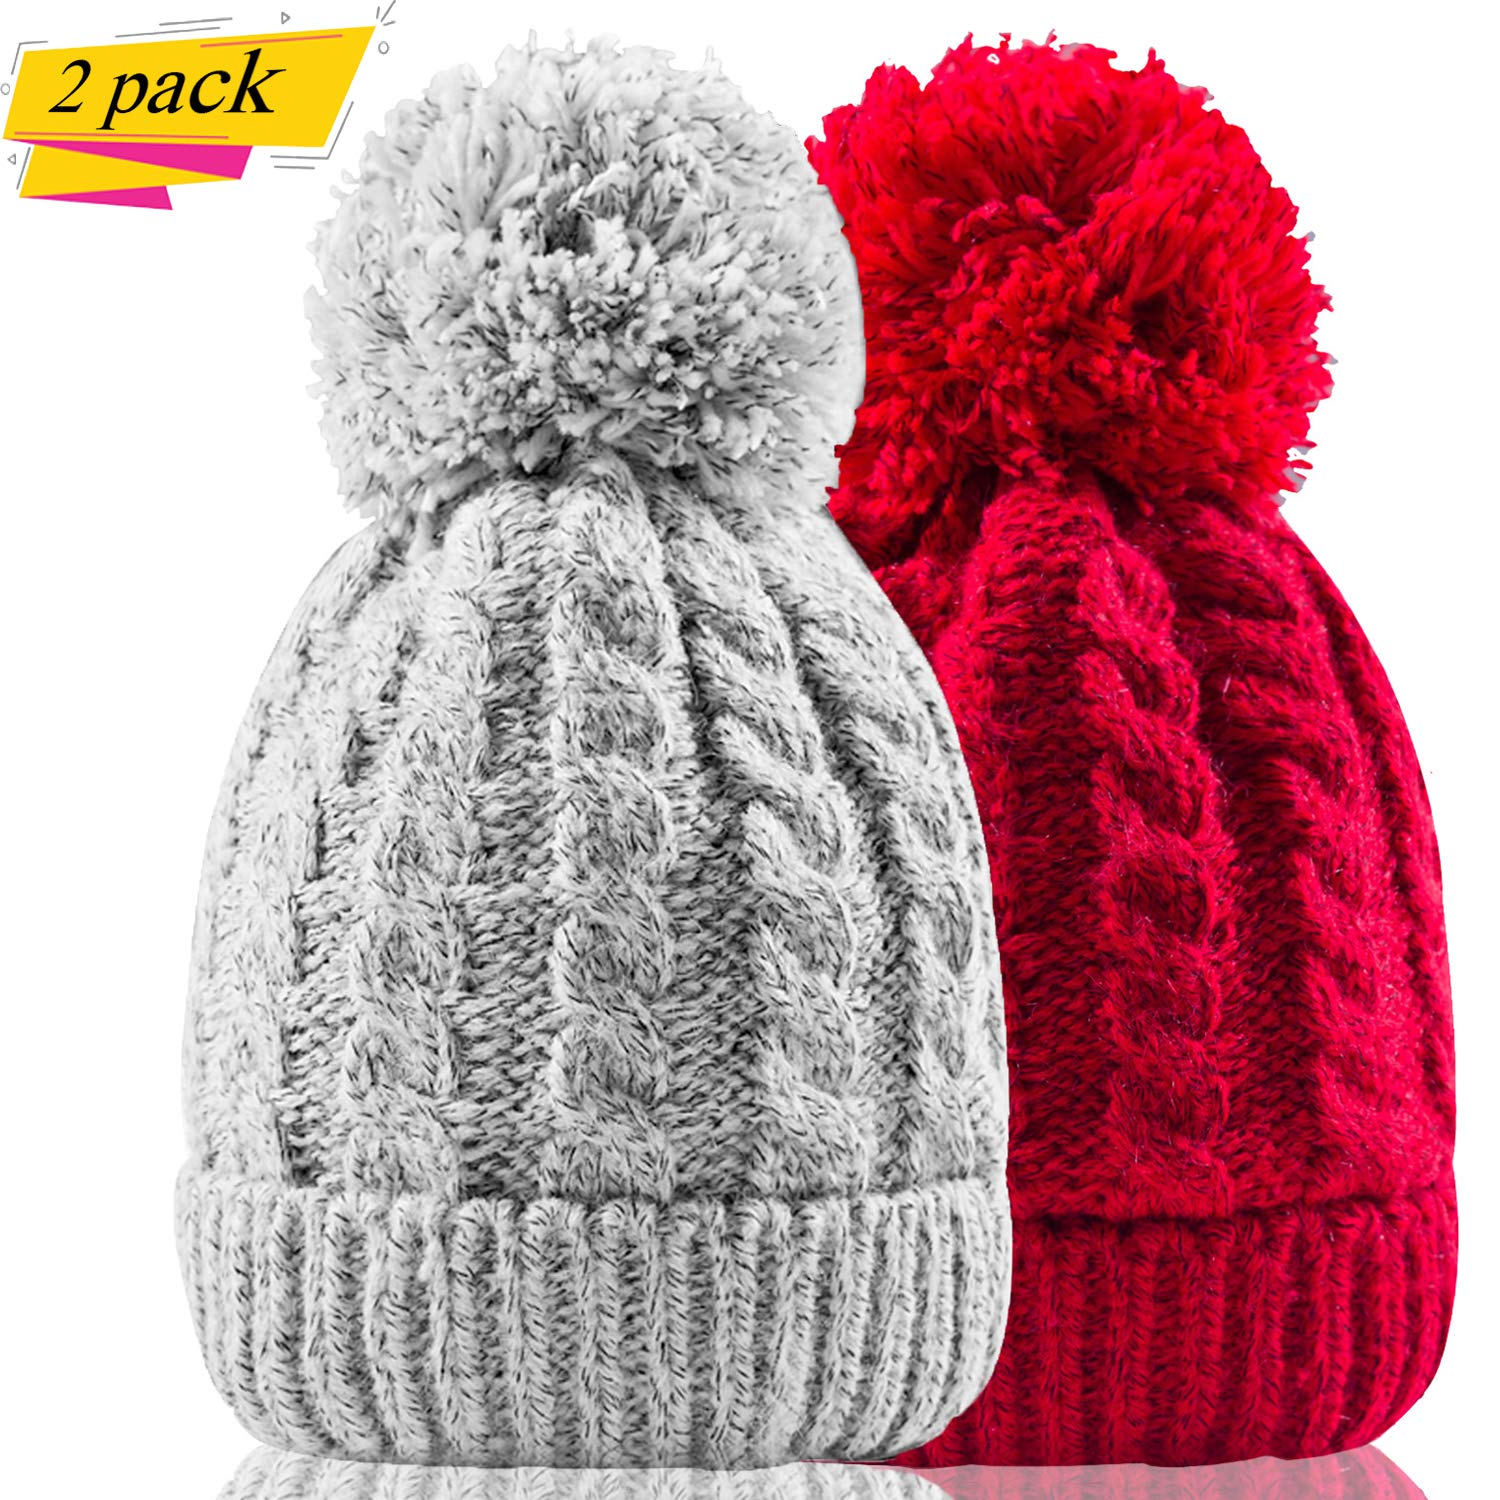 Women's Winter Beanie Warm Fleece Lining - Thick Slouchy Cable Knit Skull Hat Ski Cap(Grey+red)